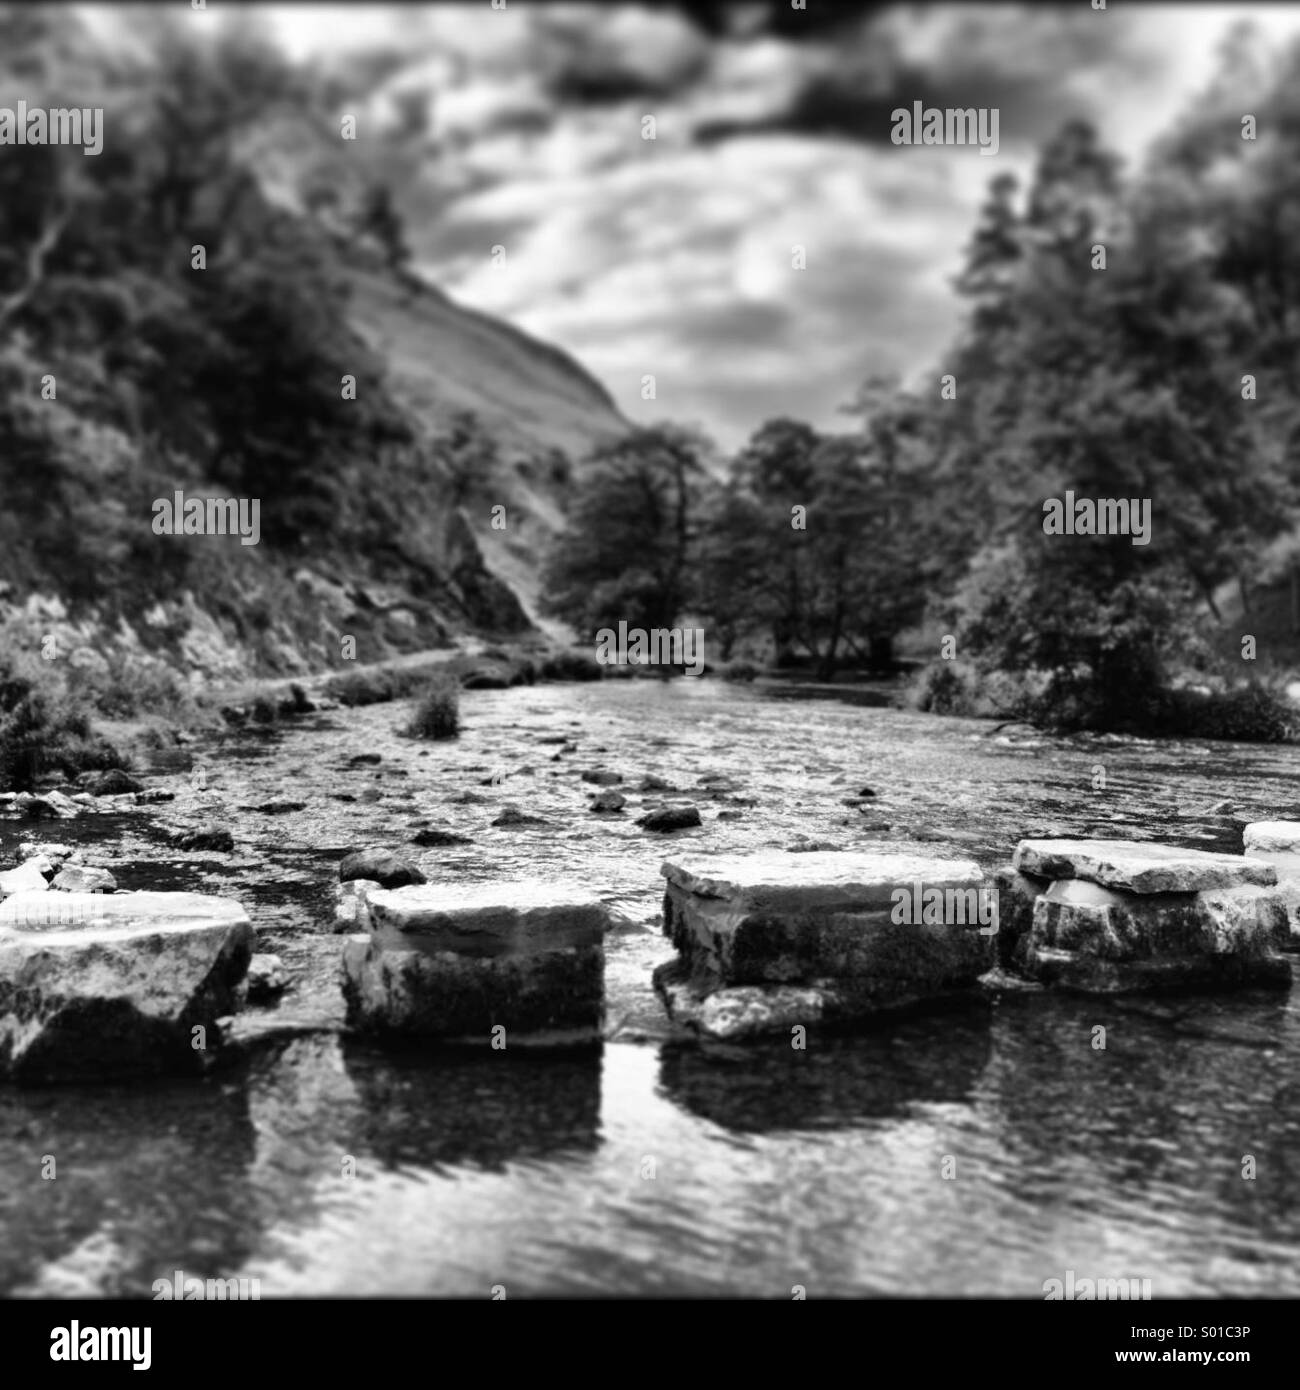 Stepping stones - Stock Image